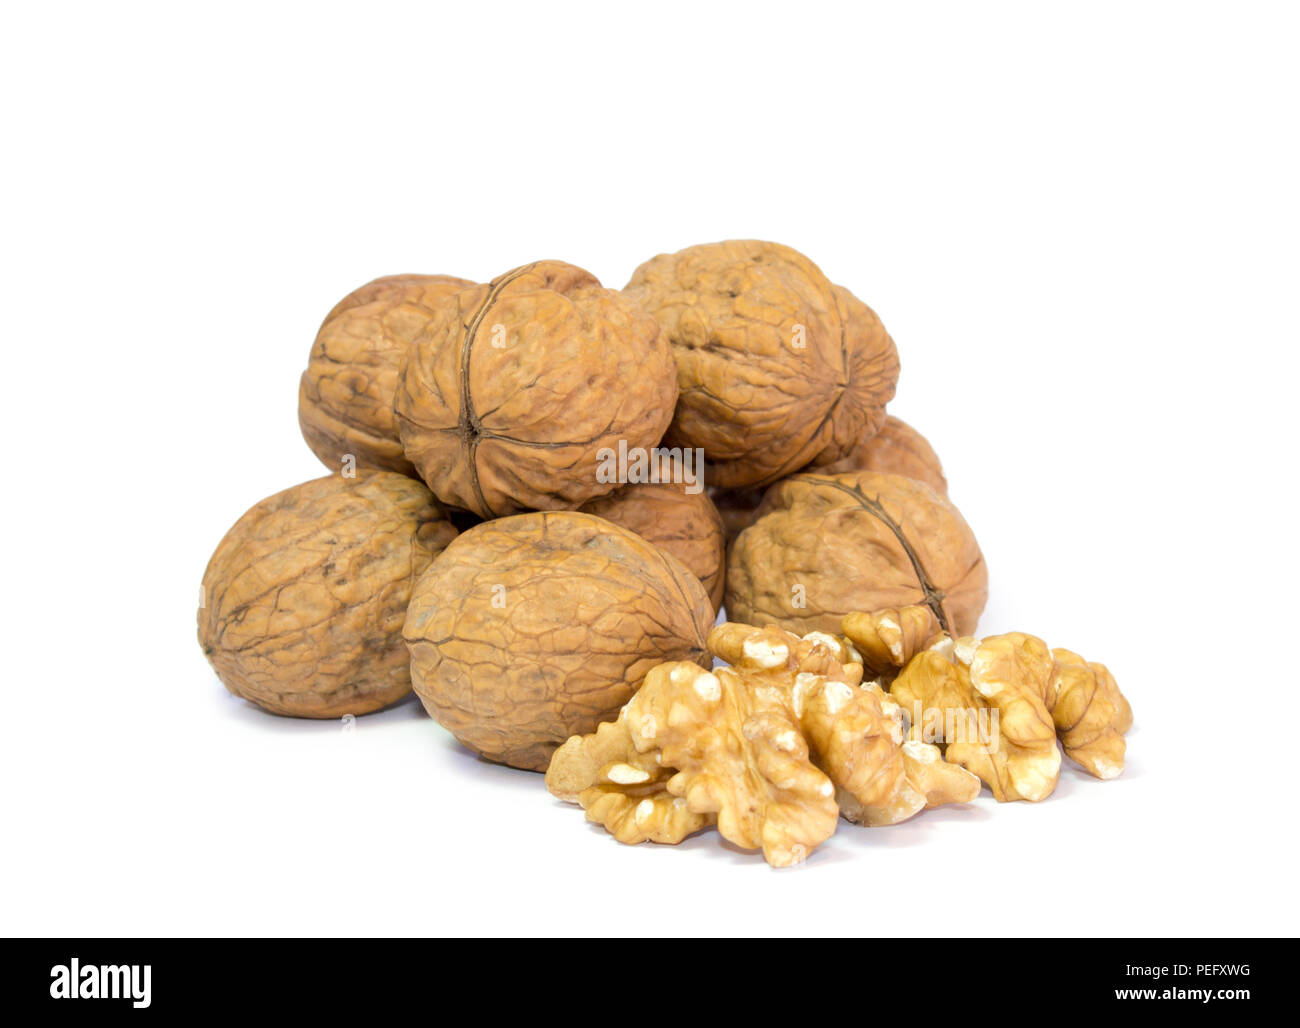 Horizontal photo of couple of walnut kernels in front of pile of walnut shells isolated on white background. Healthy and tasty snacks. - Stock Image